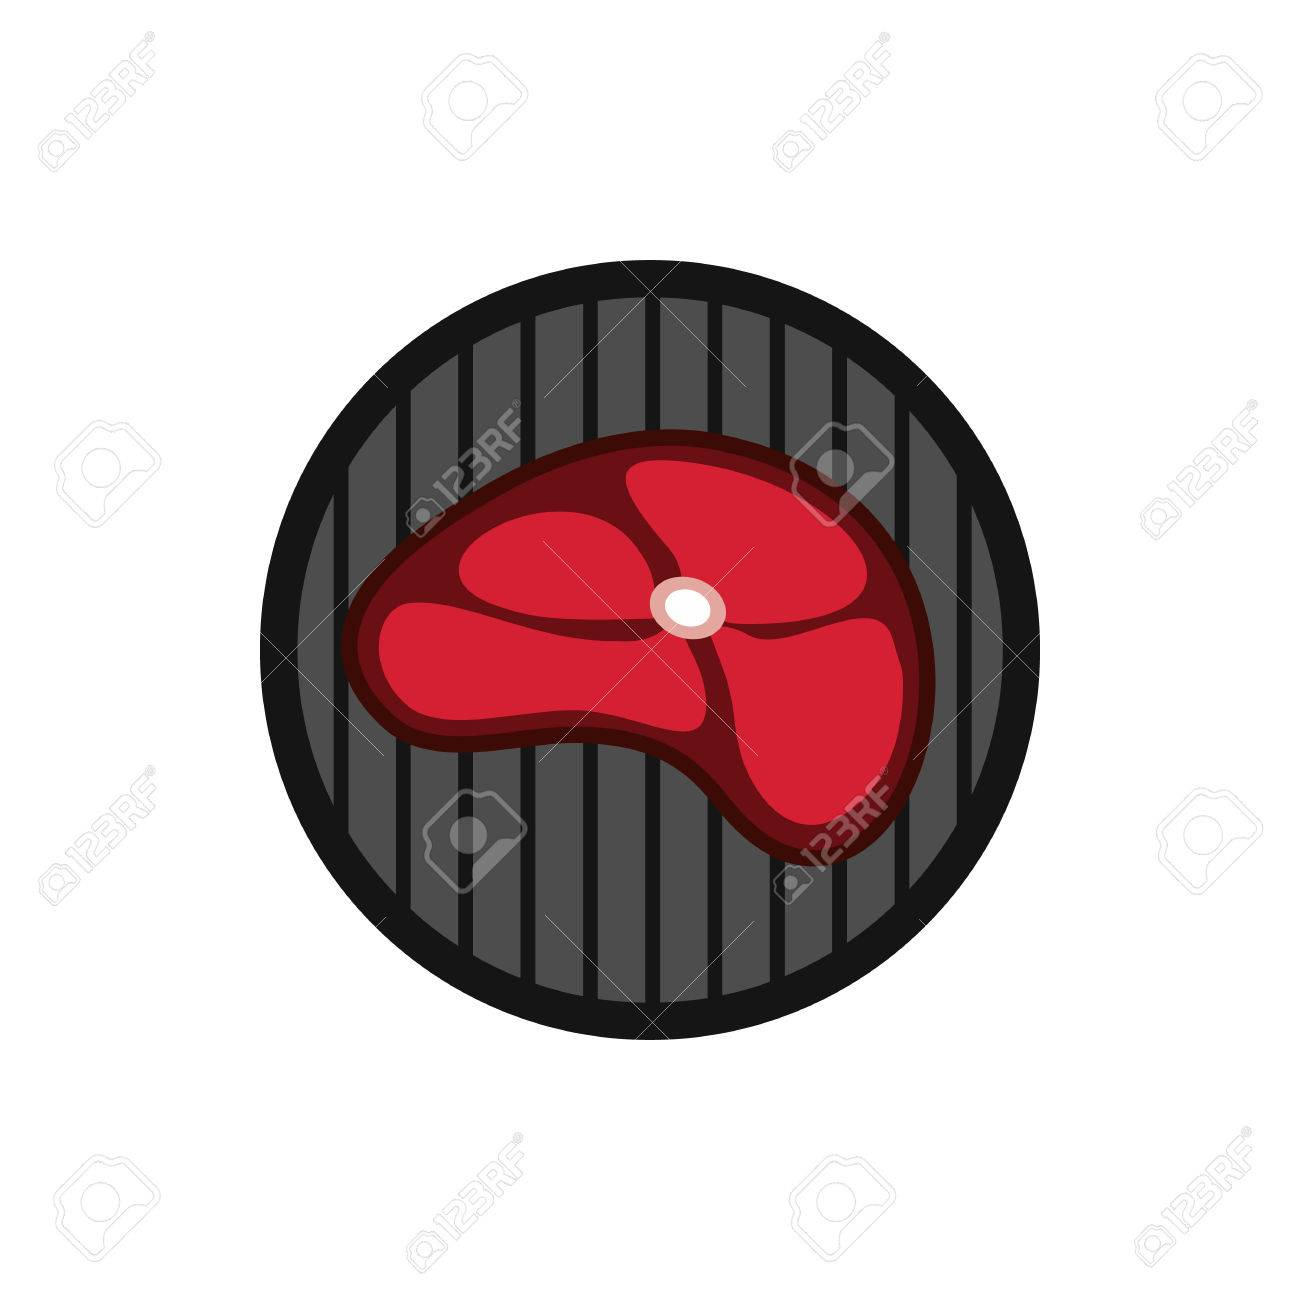 Steak On Grill Icon In Flat Style Isolated On White Background Food